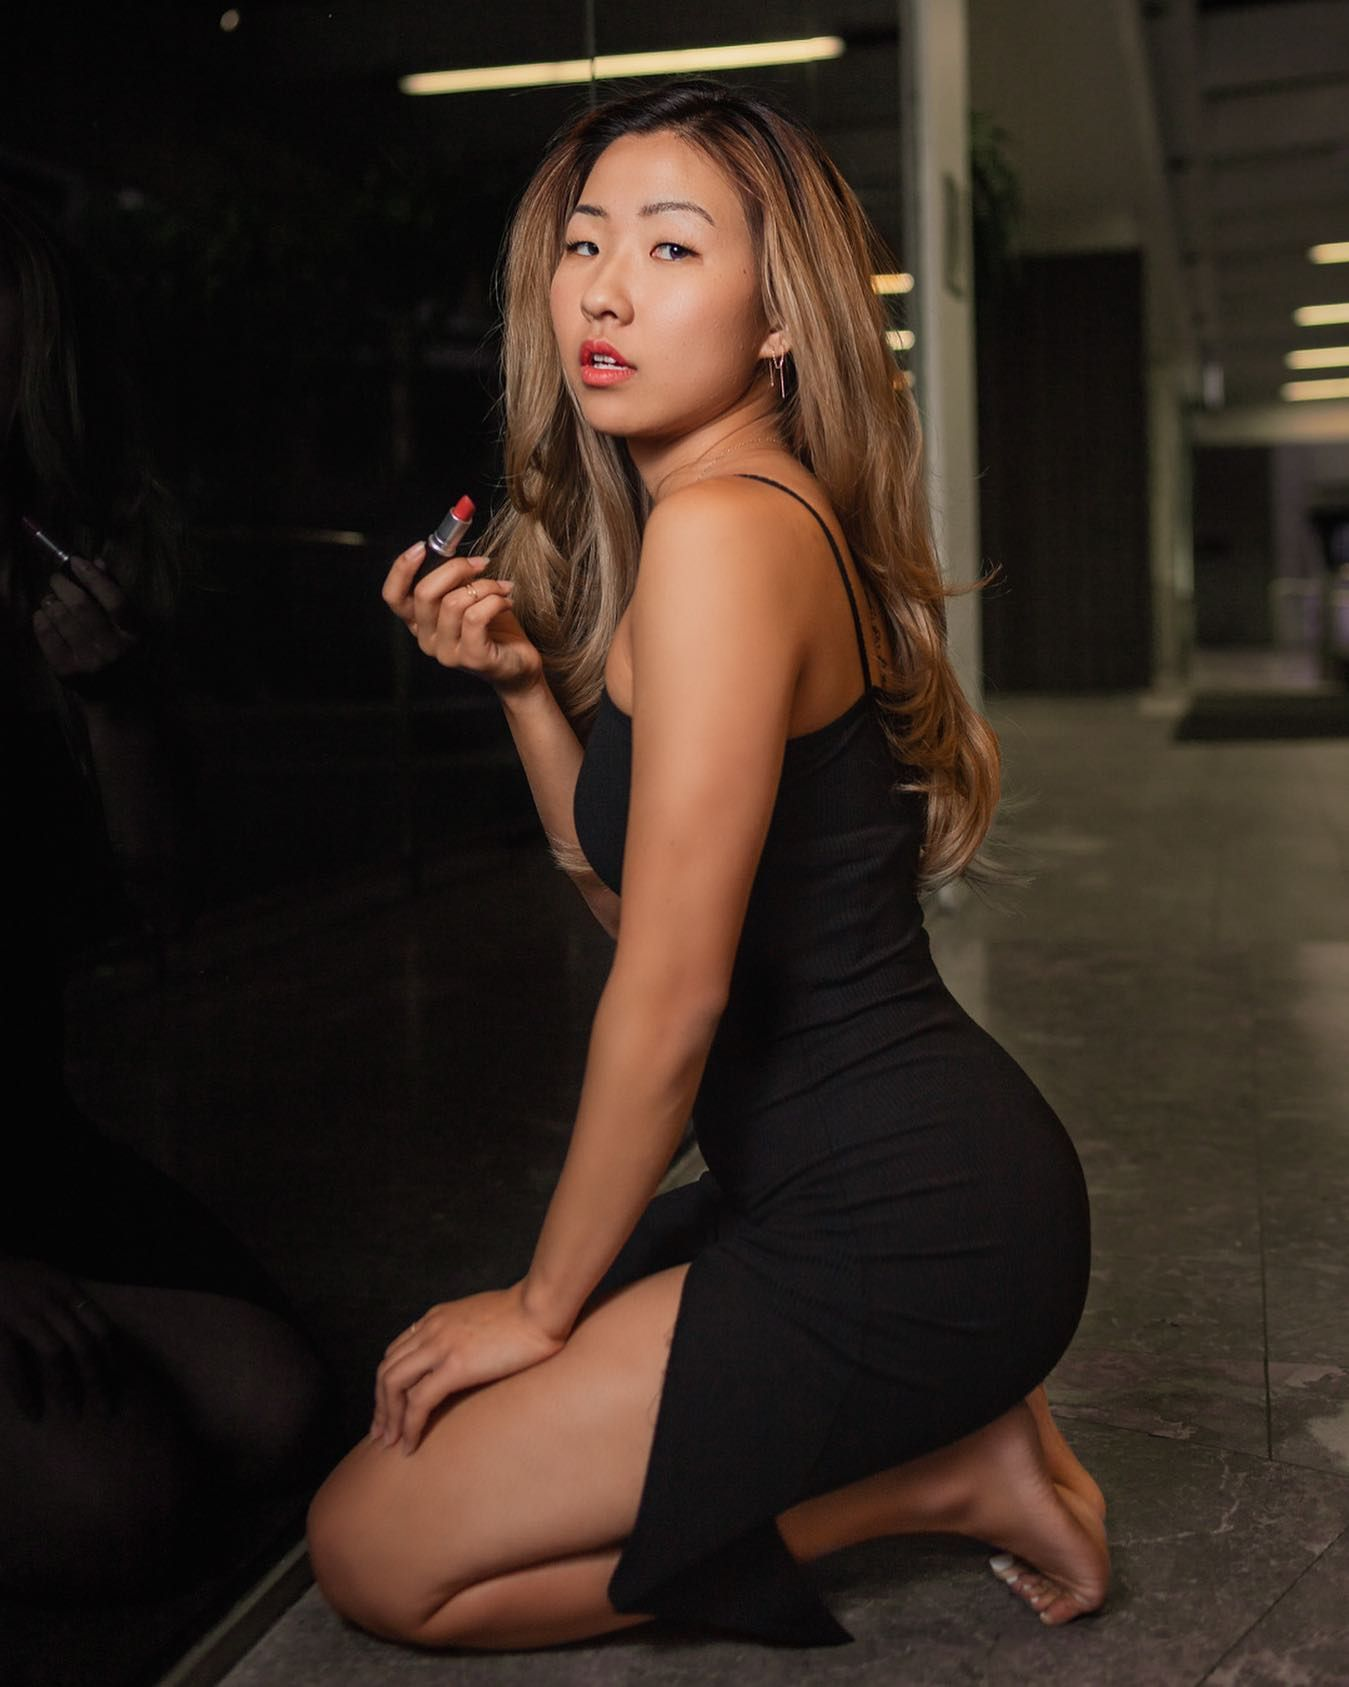 She Was A Long Cool Woman In A Black Dress Recent Photo Shoot In Downtown Los Angeles With The Lovely Model Juliahslee [ 1687 x 1349 Pixel ]